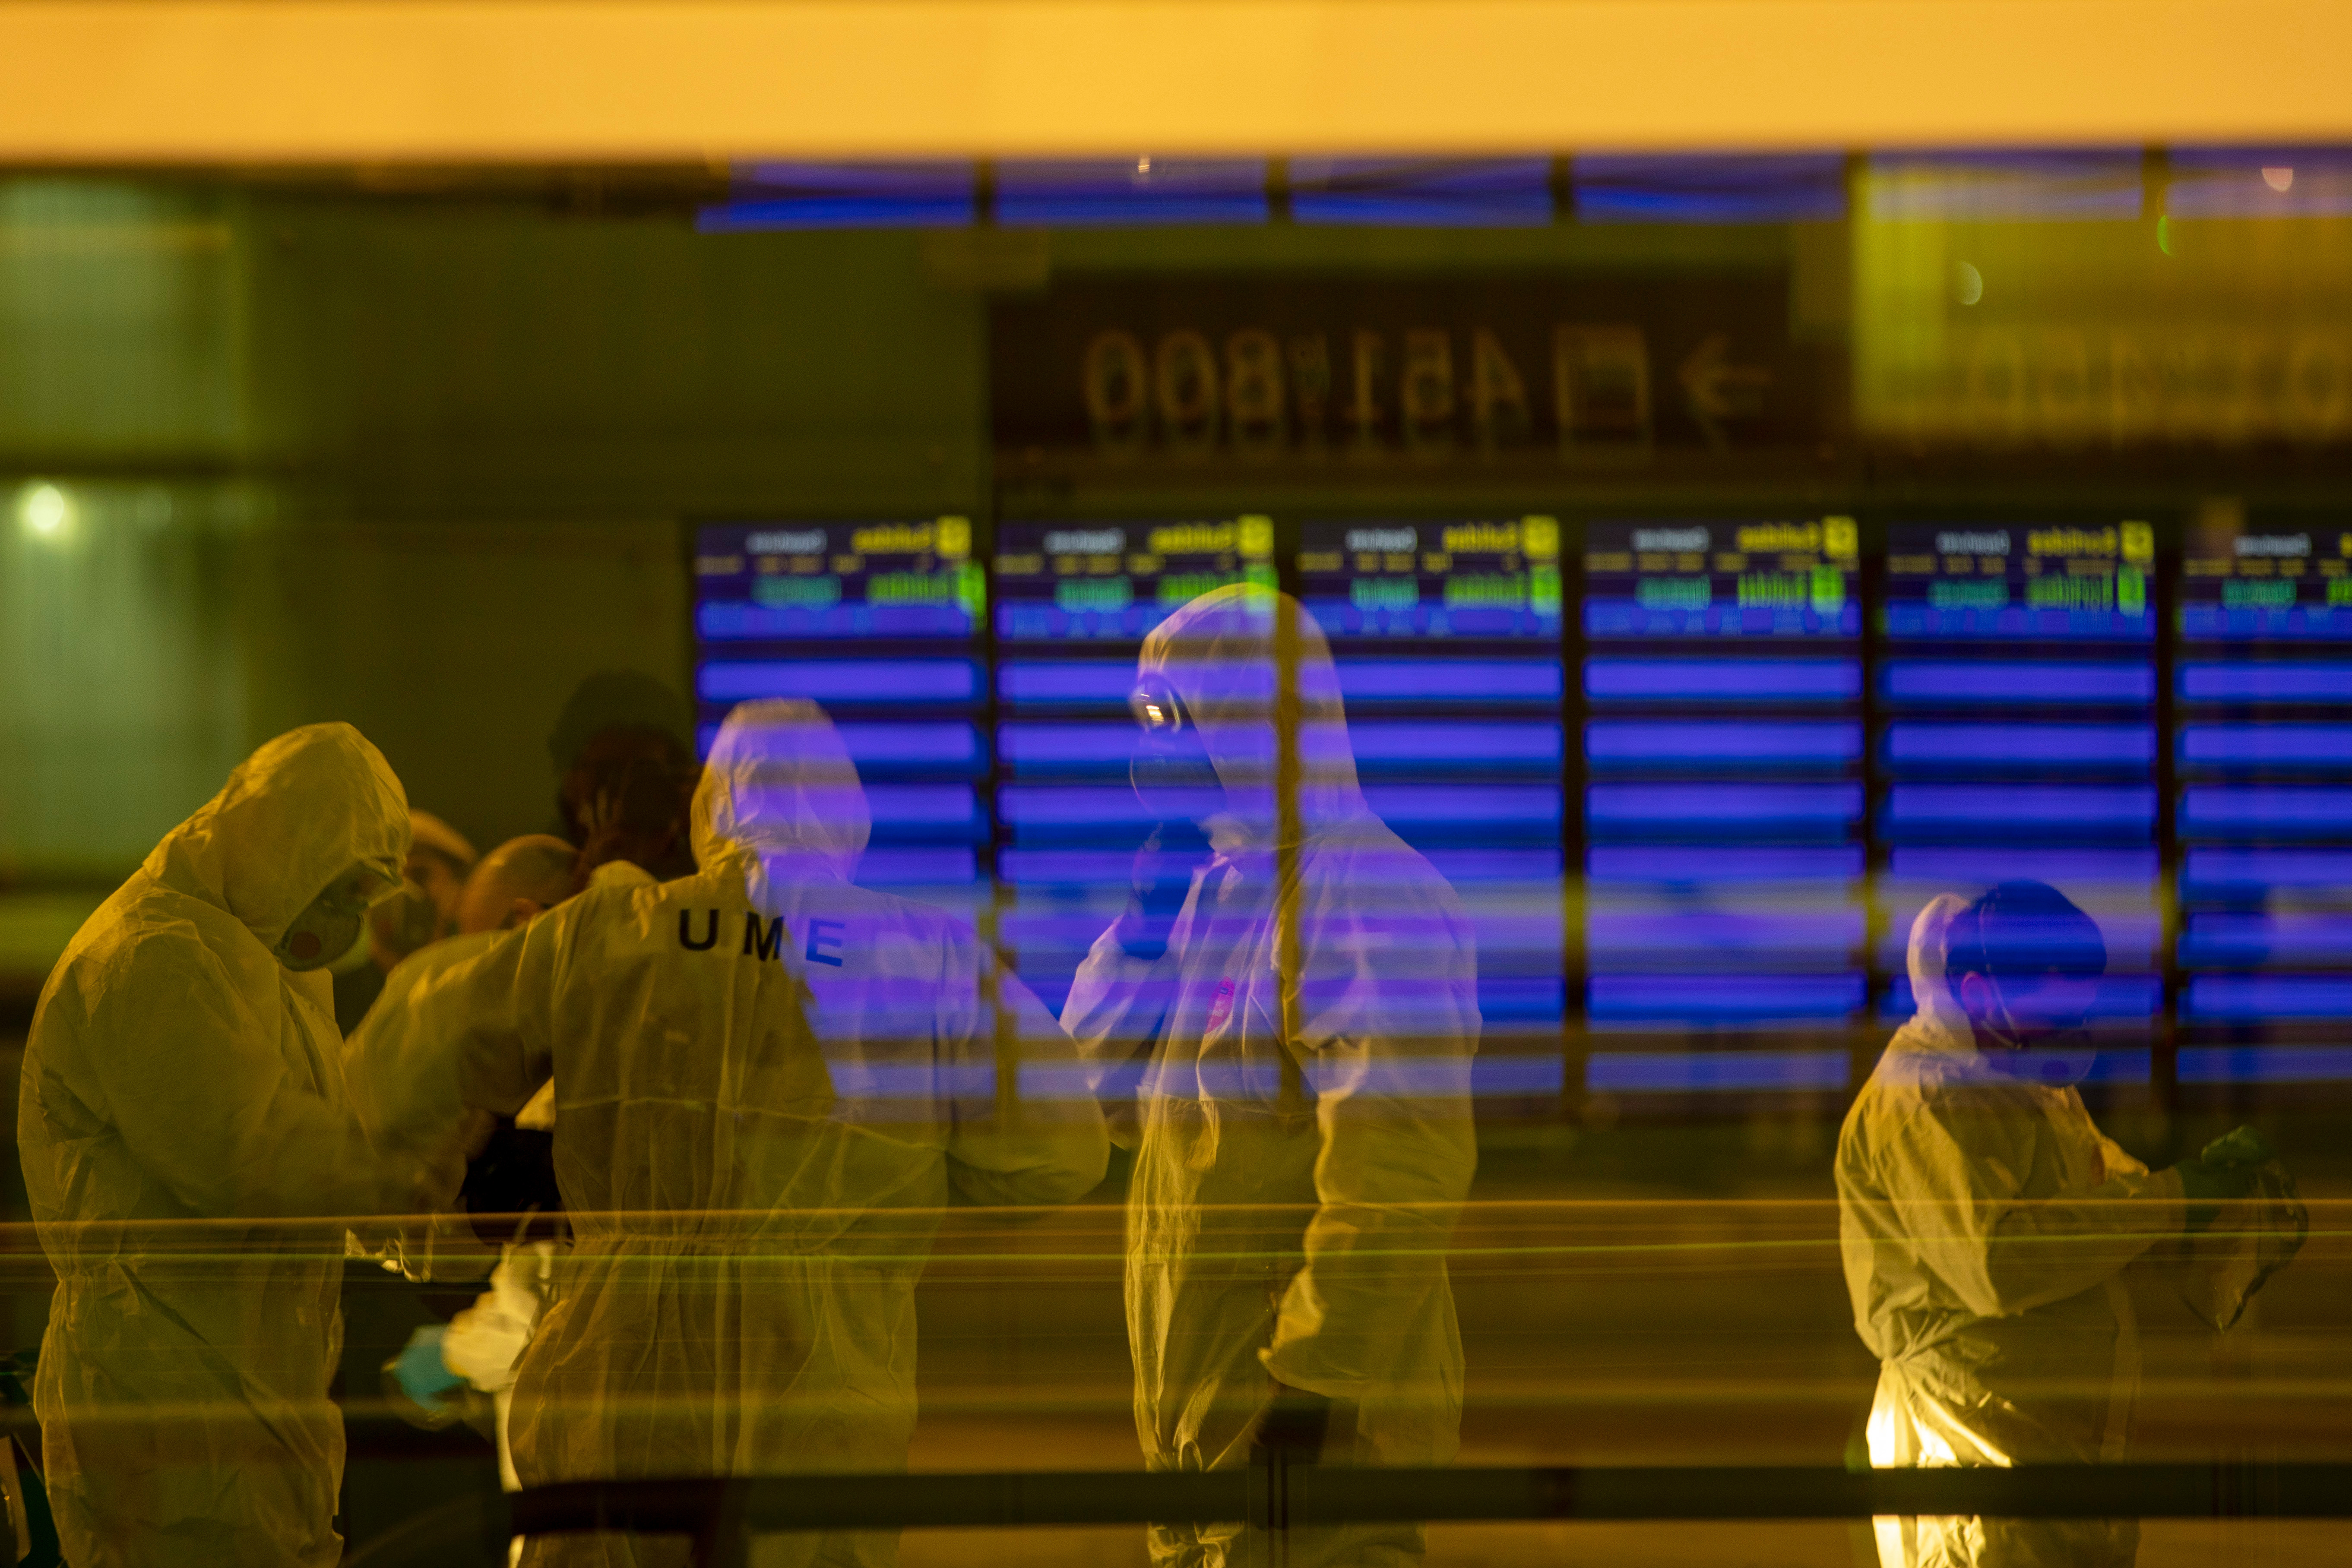 Spanish UME (Emergency Army Unit) soldiers disinfect a terminal to prevent the spread of the new coronavirus at a Barcelona airport